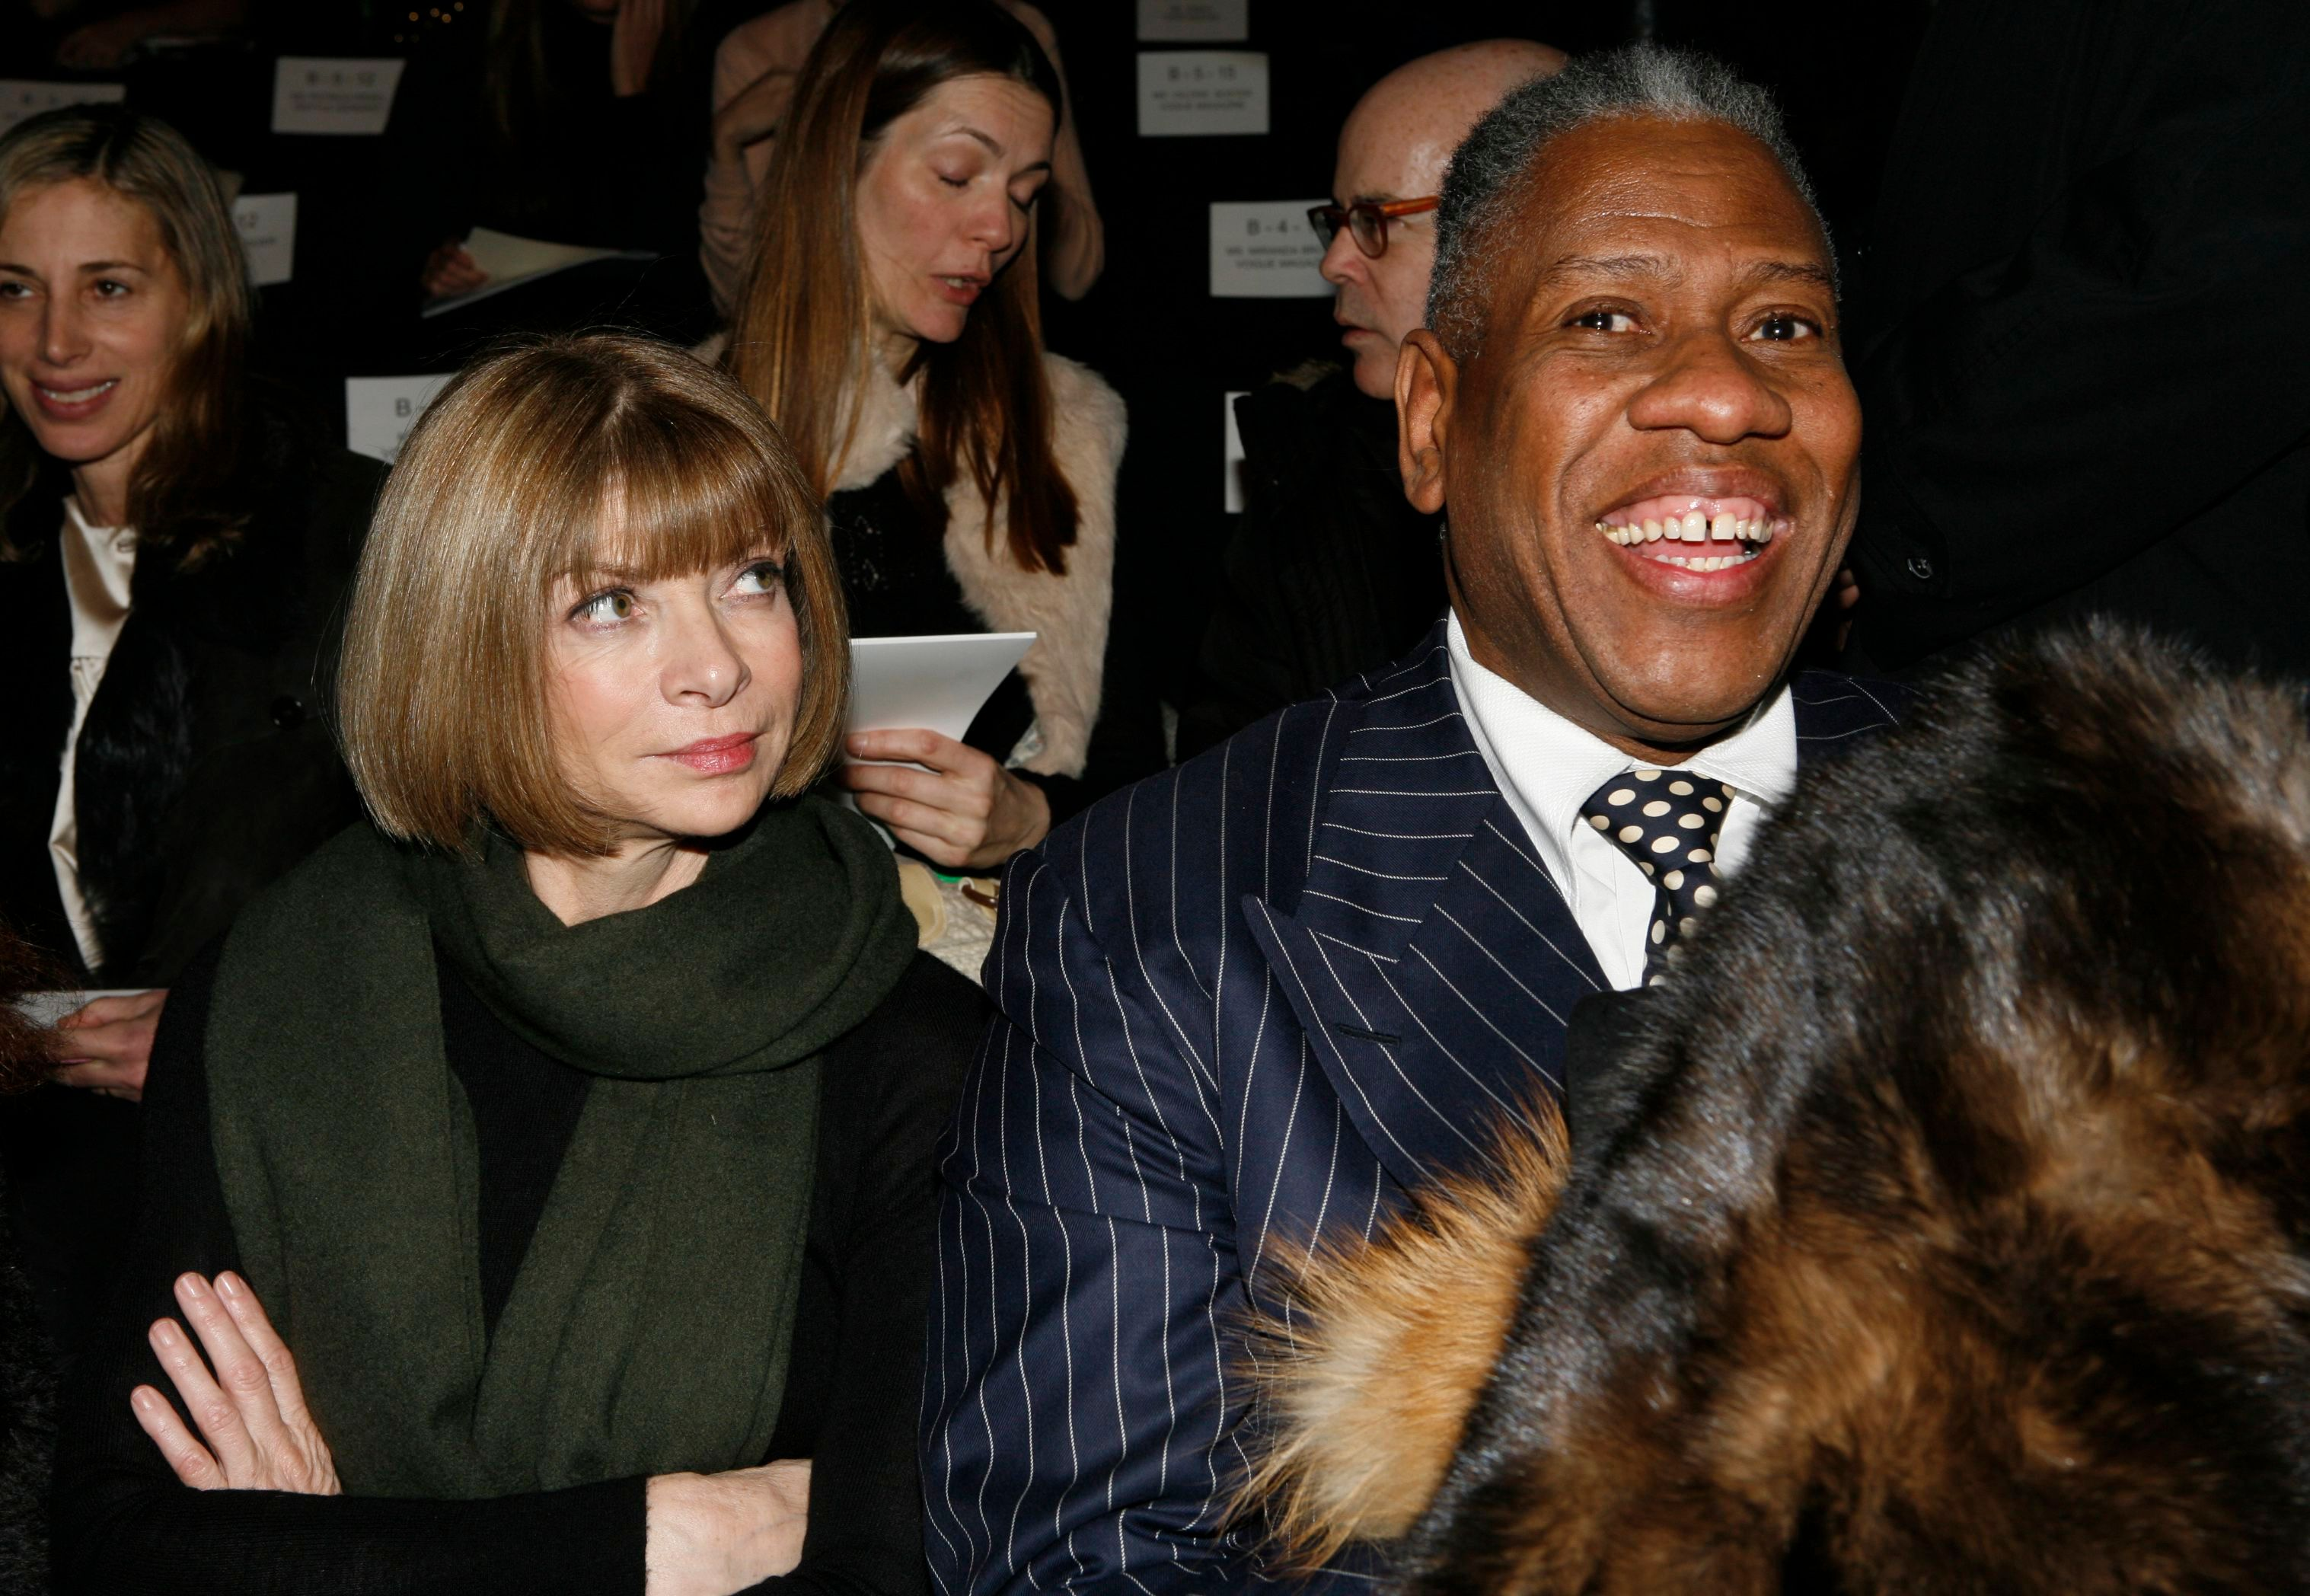 Anna Wintour, Andre Leon Talley Vogue editor-in-chief Anna Wintour and Vogue editor-at-large Andre Leon Talley, right, attend the showing of the Oscar de la Renta fall 2007 collection, during Fashion Week in New YorkFASHION OSCAR DE LA RENTA, New York, USA